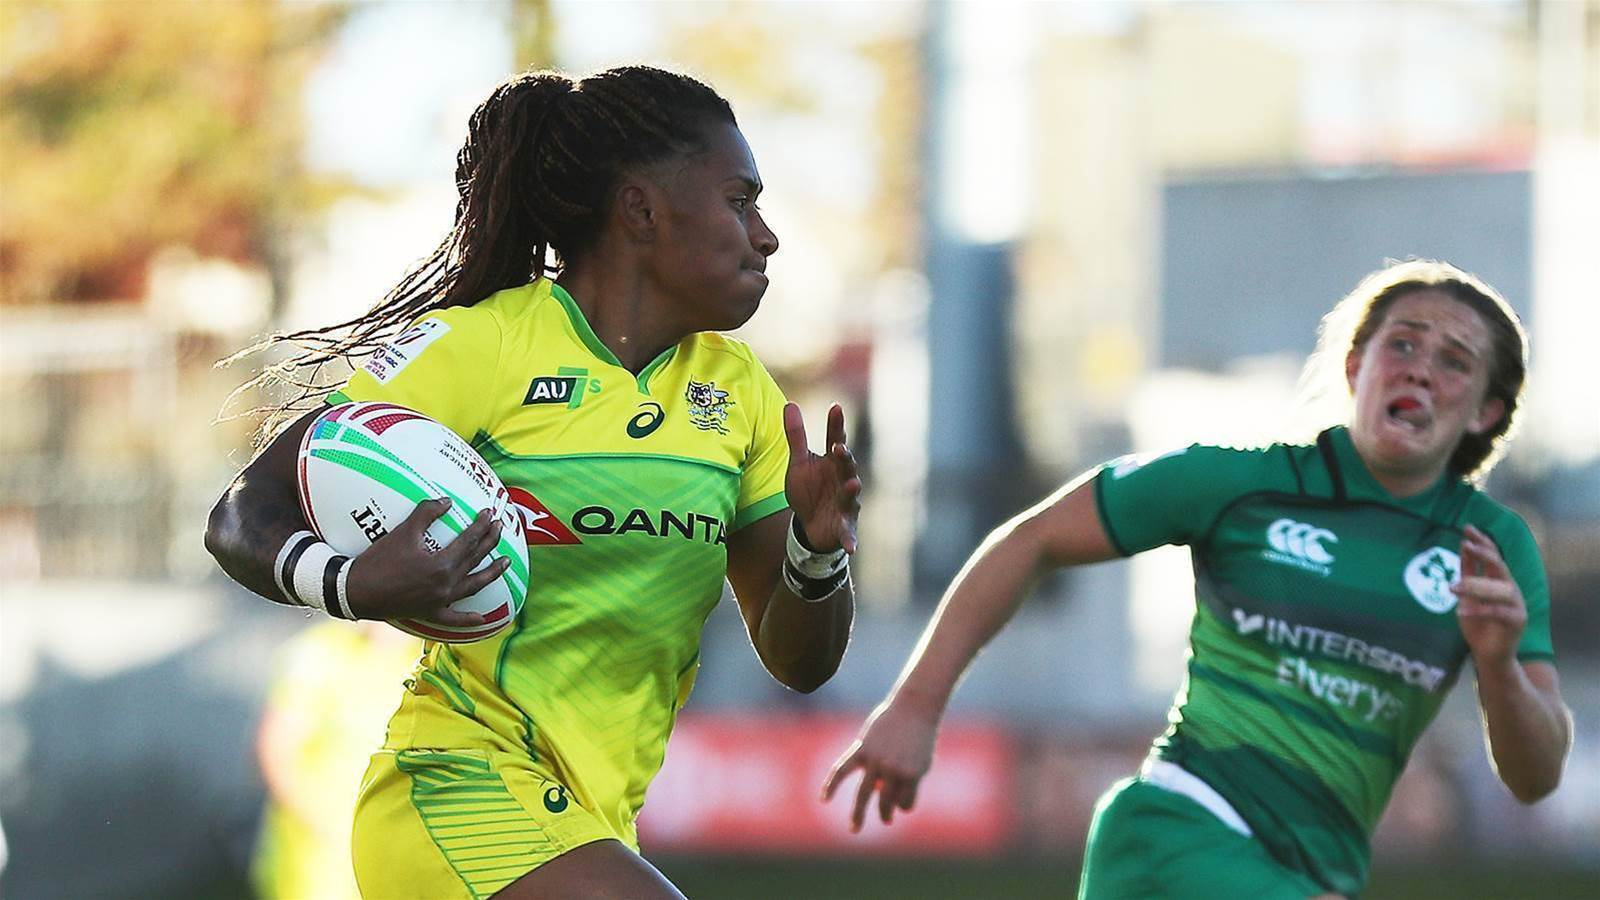 Mixed day for Australia Sevens